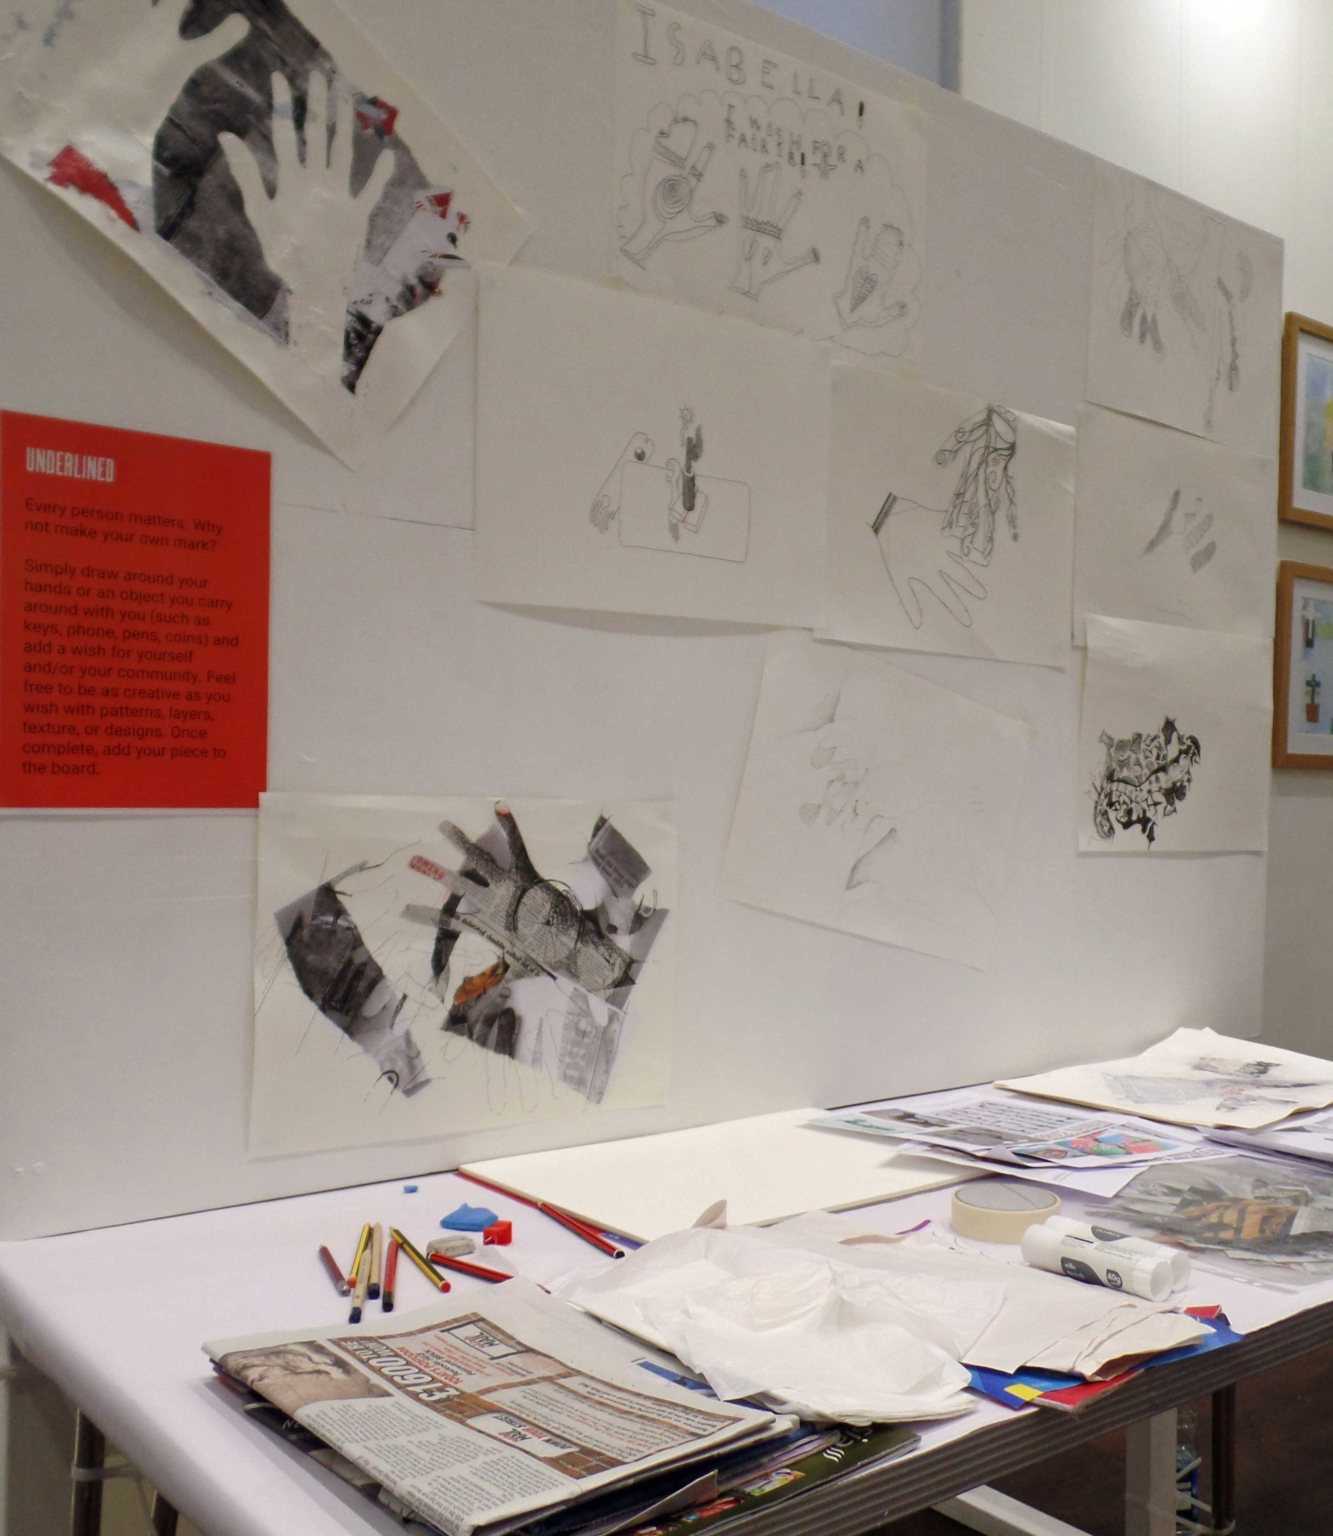 underlined project exhibition